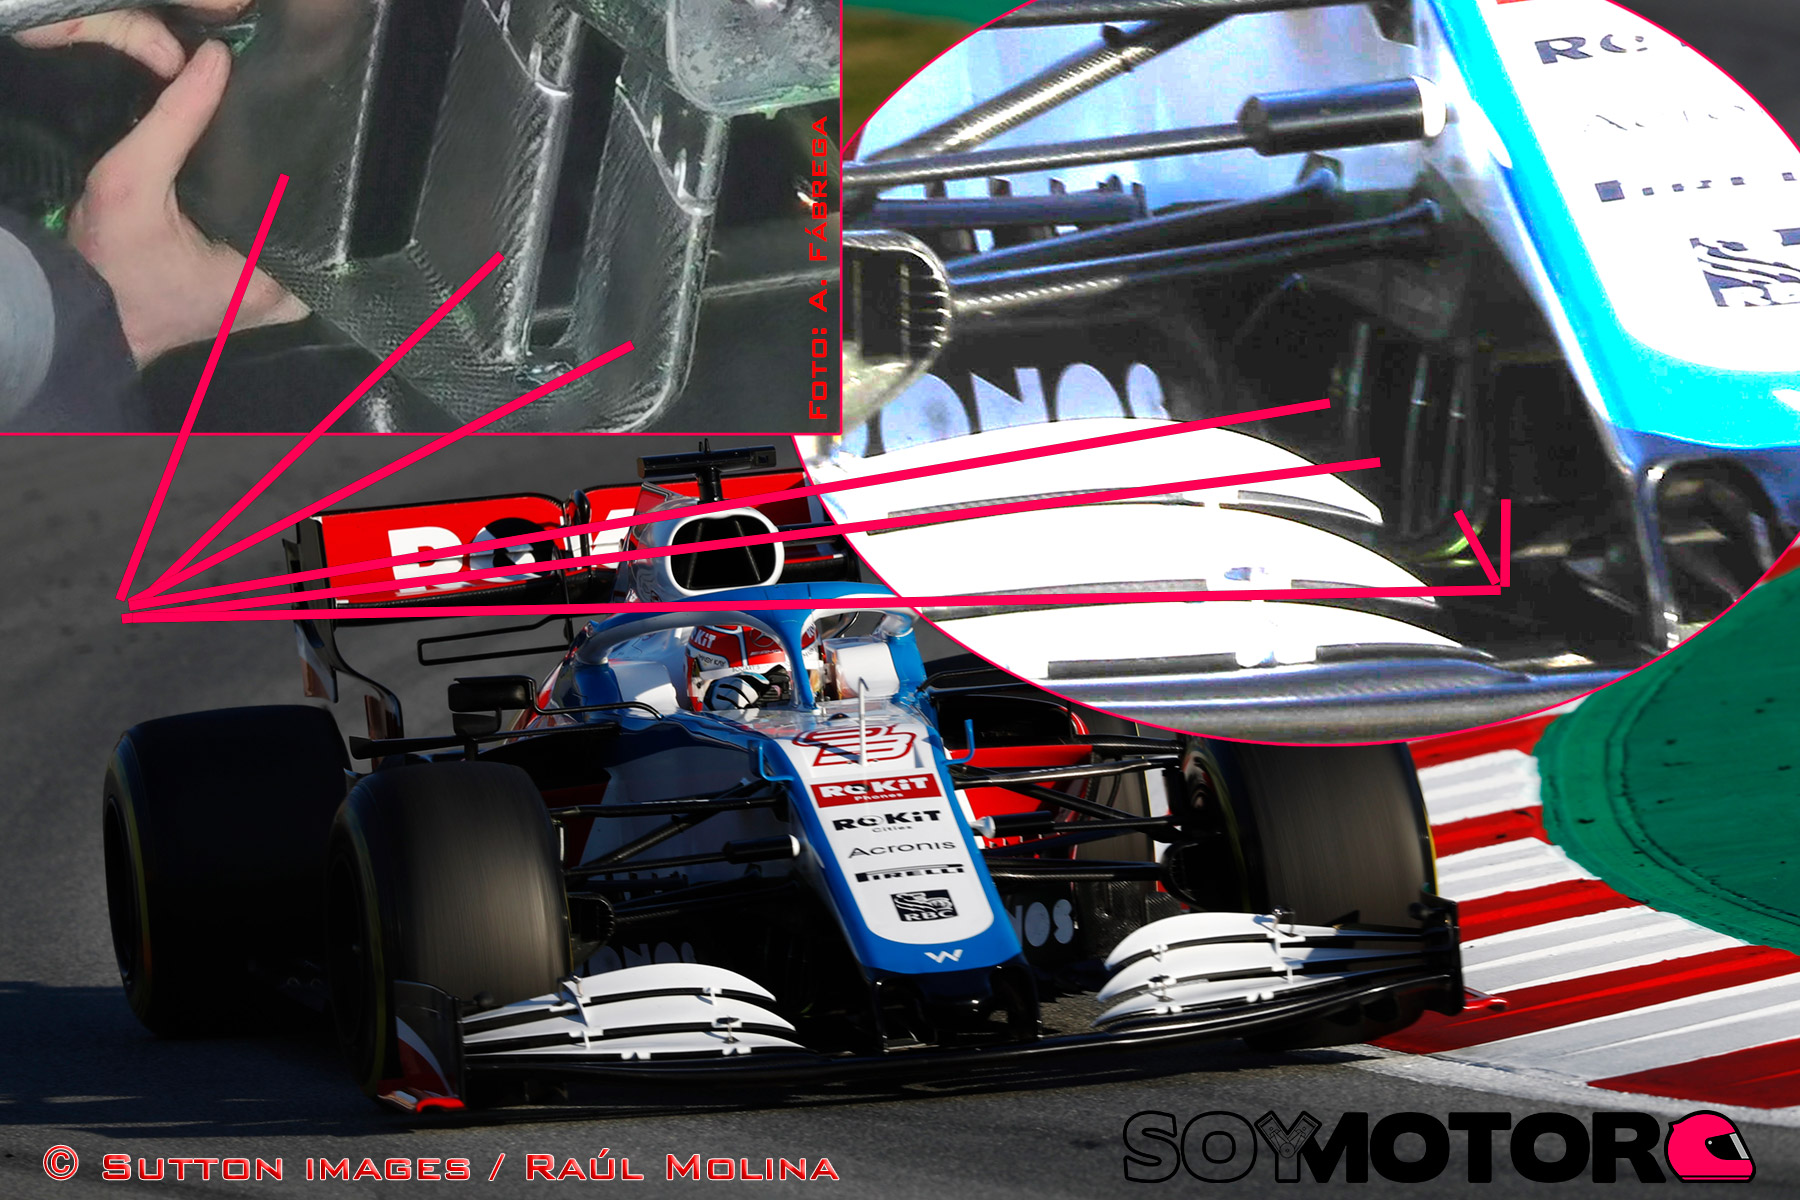 williams-turning-vanes-bajo-el-morro-soymotor.jpg